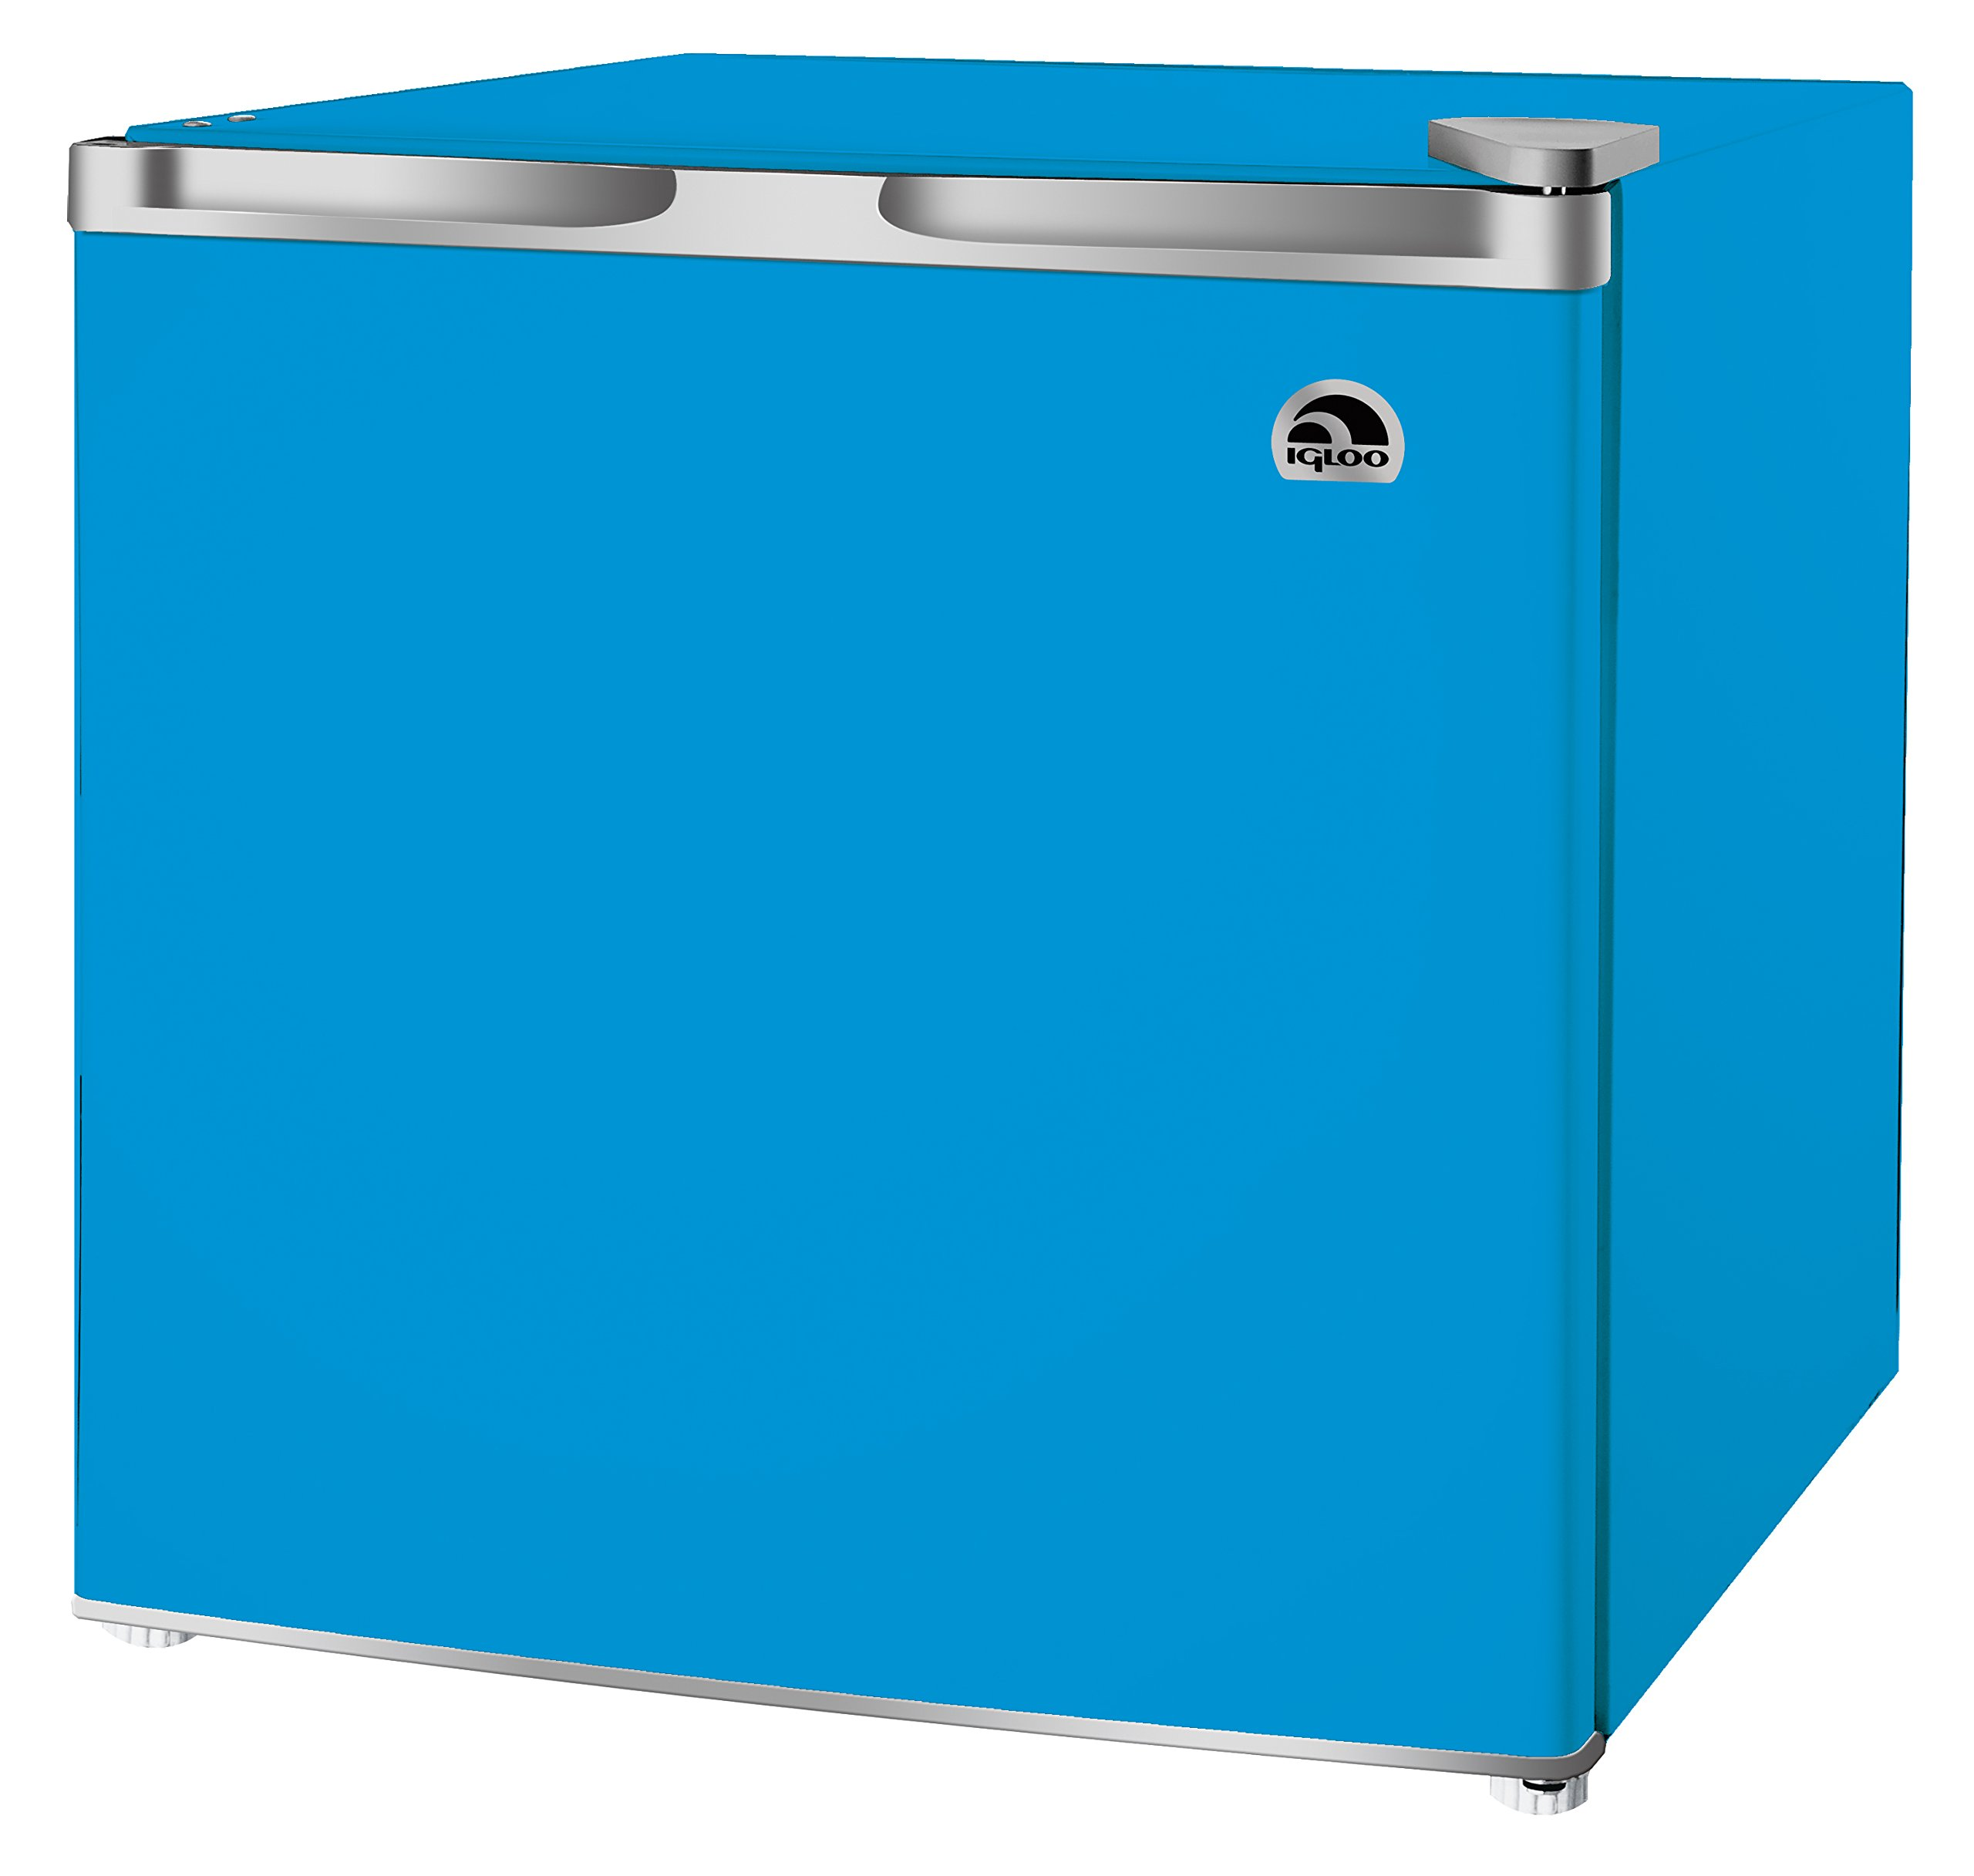 1.6-1.7 Cubic Foot Fridge, Blue by RCA